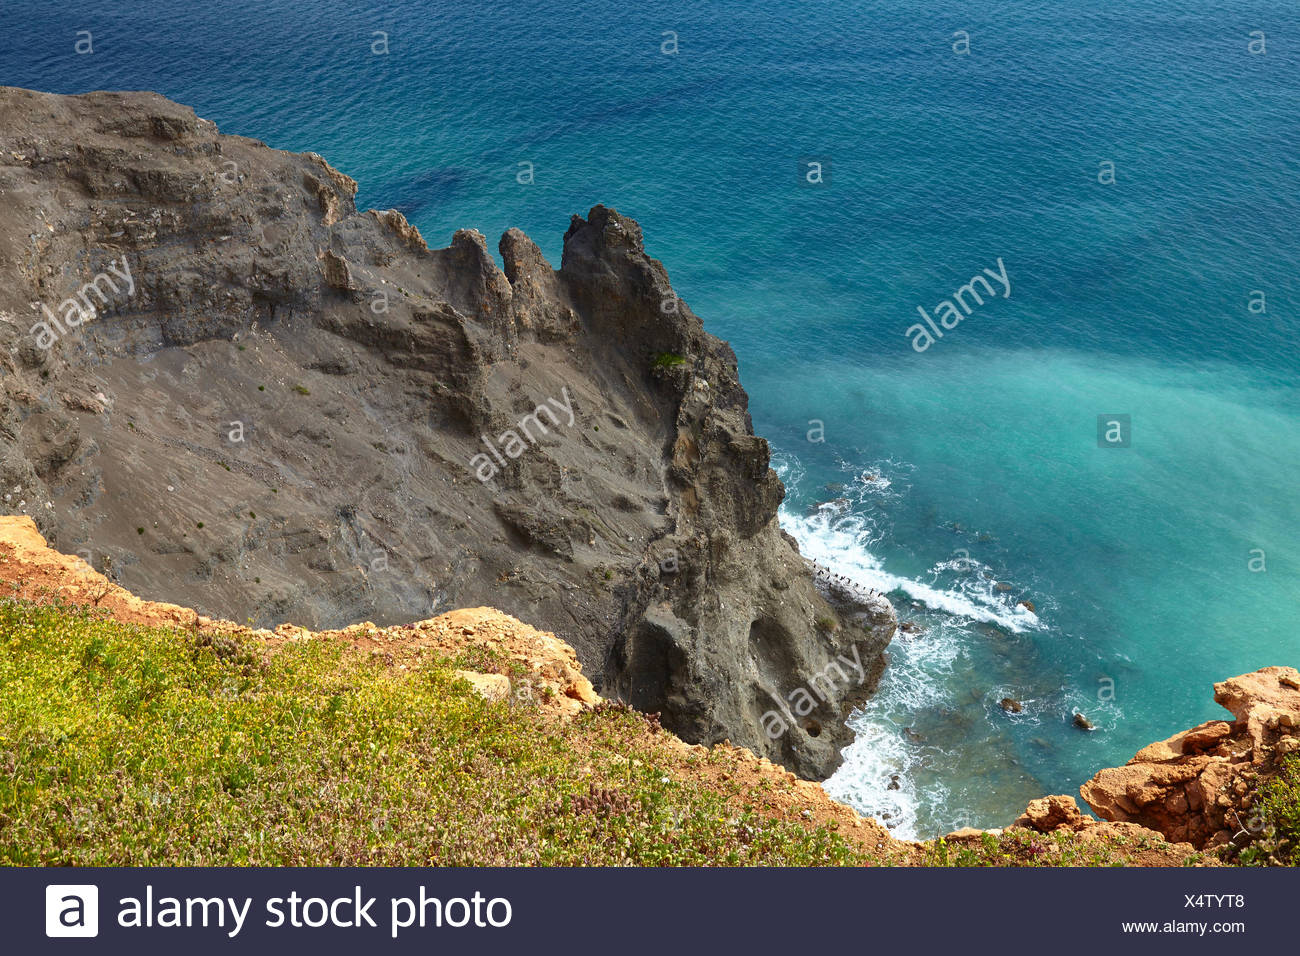 black basalt rock as a geologic anomaly at the rock coast at the Atlantic with Luz, west of Lagos, Algarve, Portugal, Europe - Stock Image